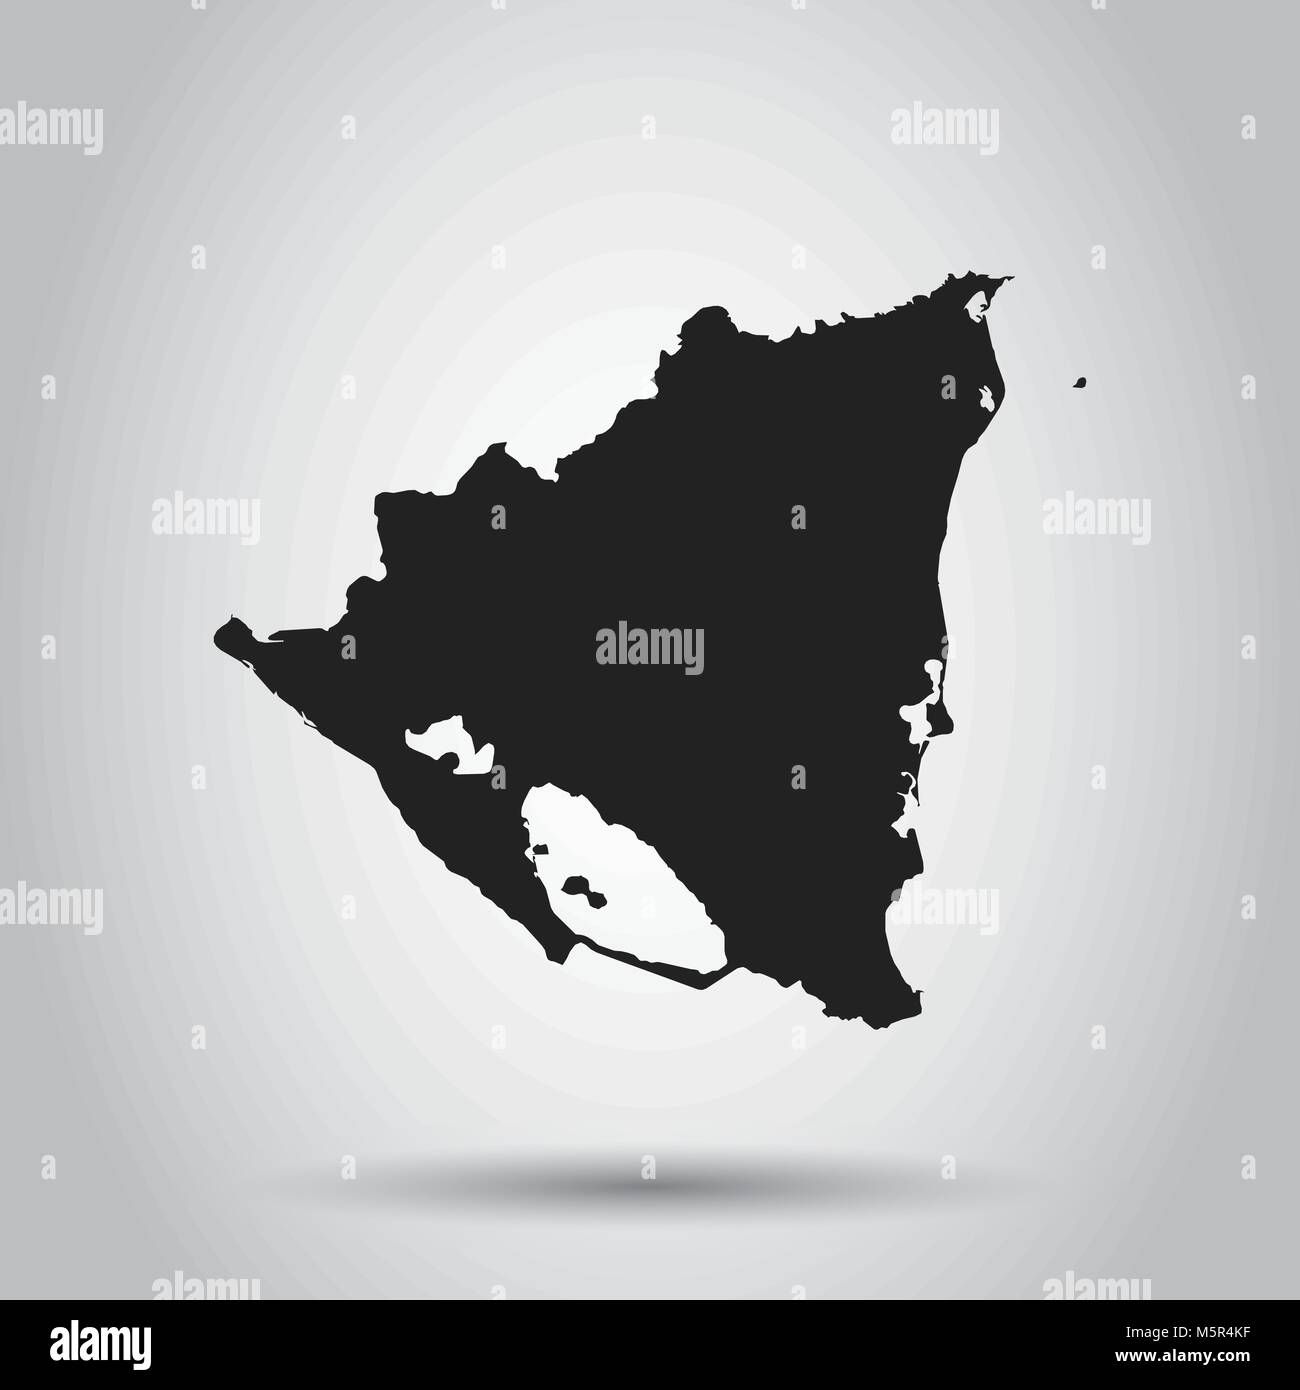 Nicaragua vector map black icon on white background stock vector nicaragua vector map black icon on white background gumiabroncs Image collections